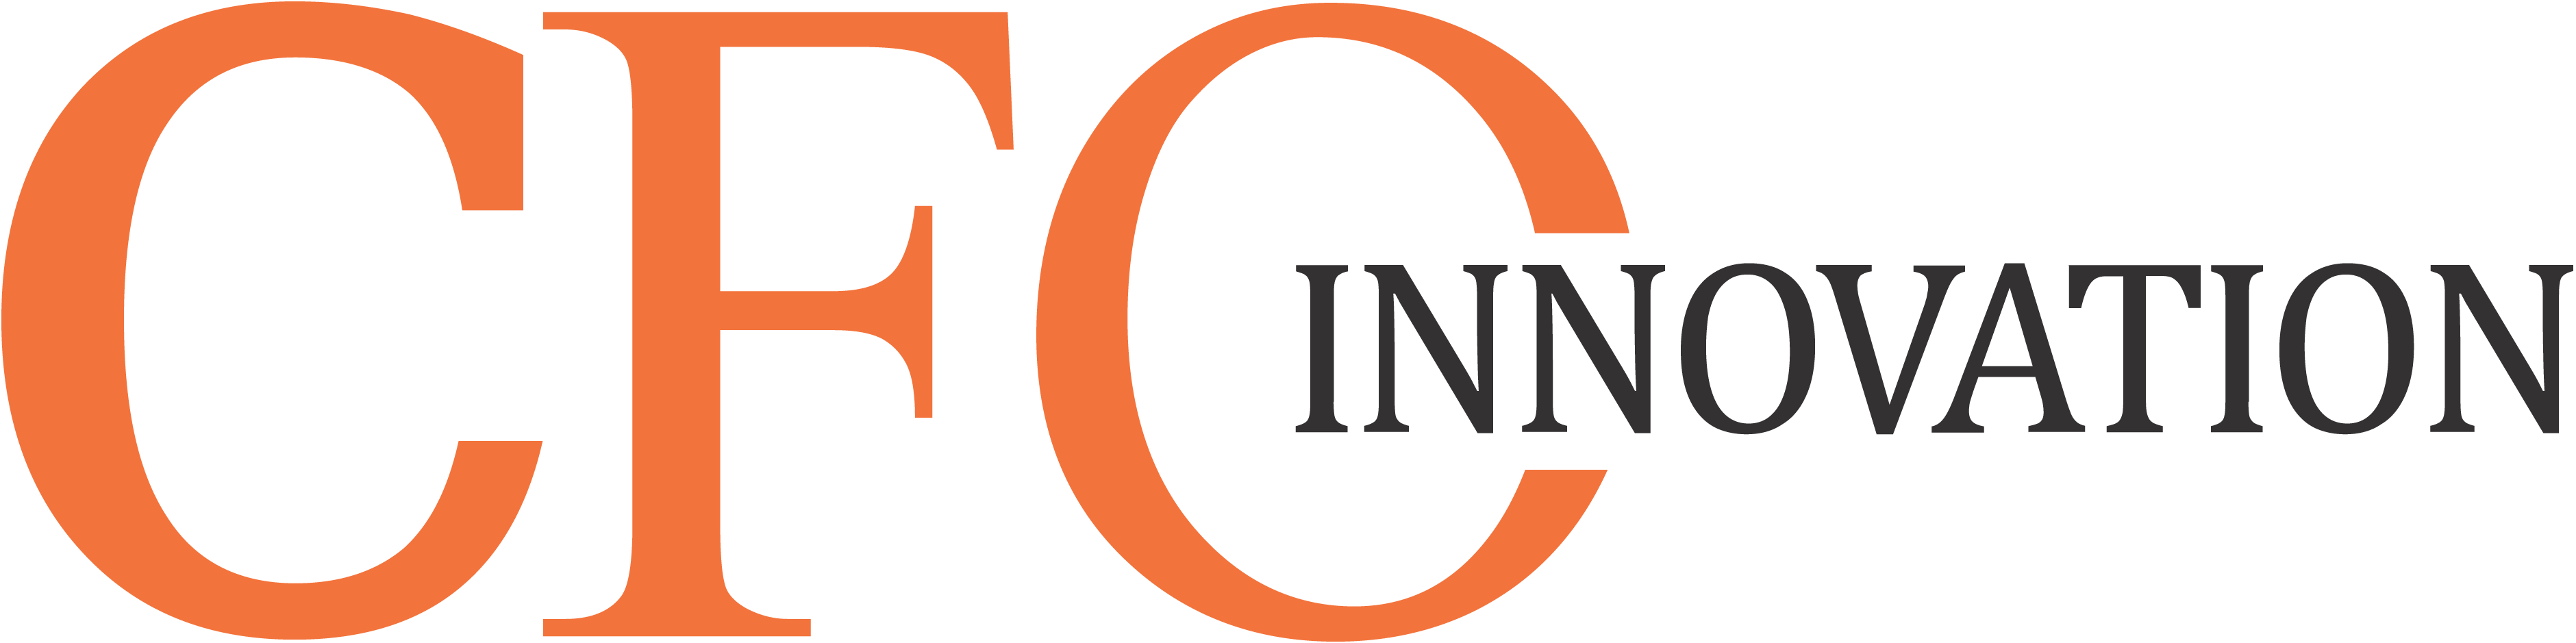 Logo-cfoinnovation